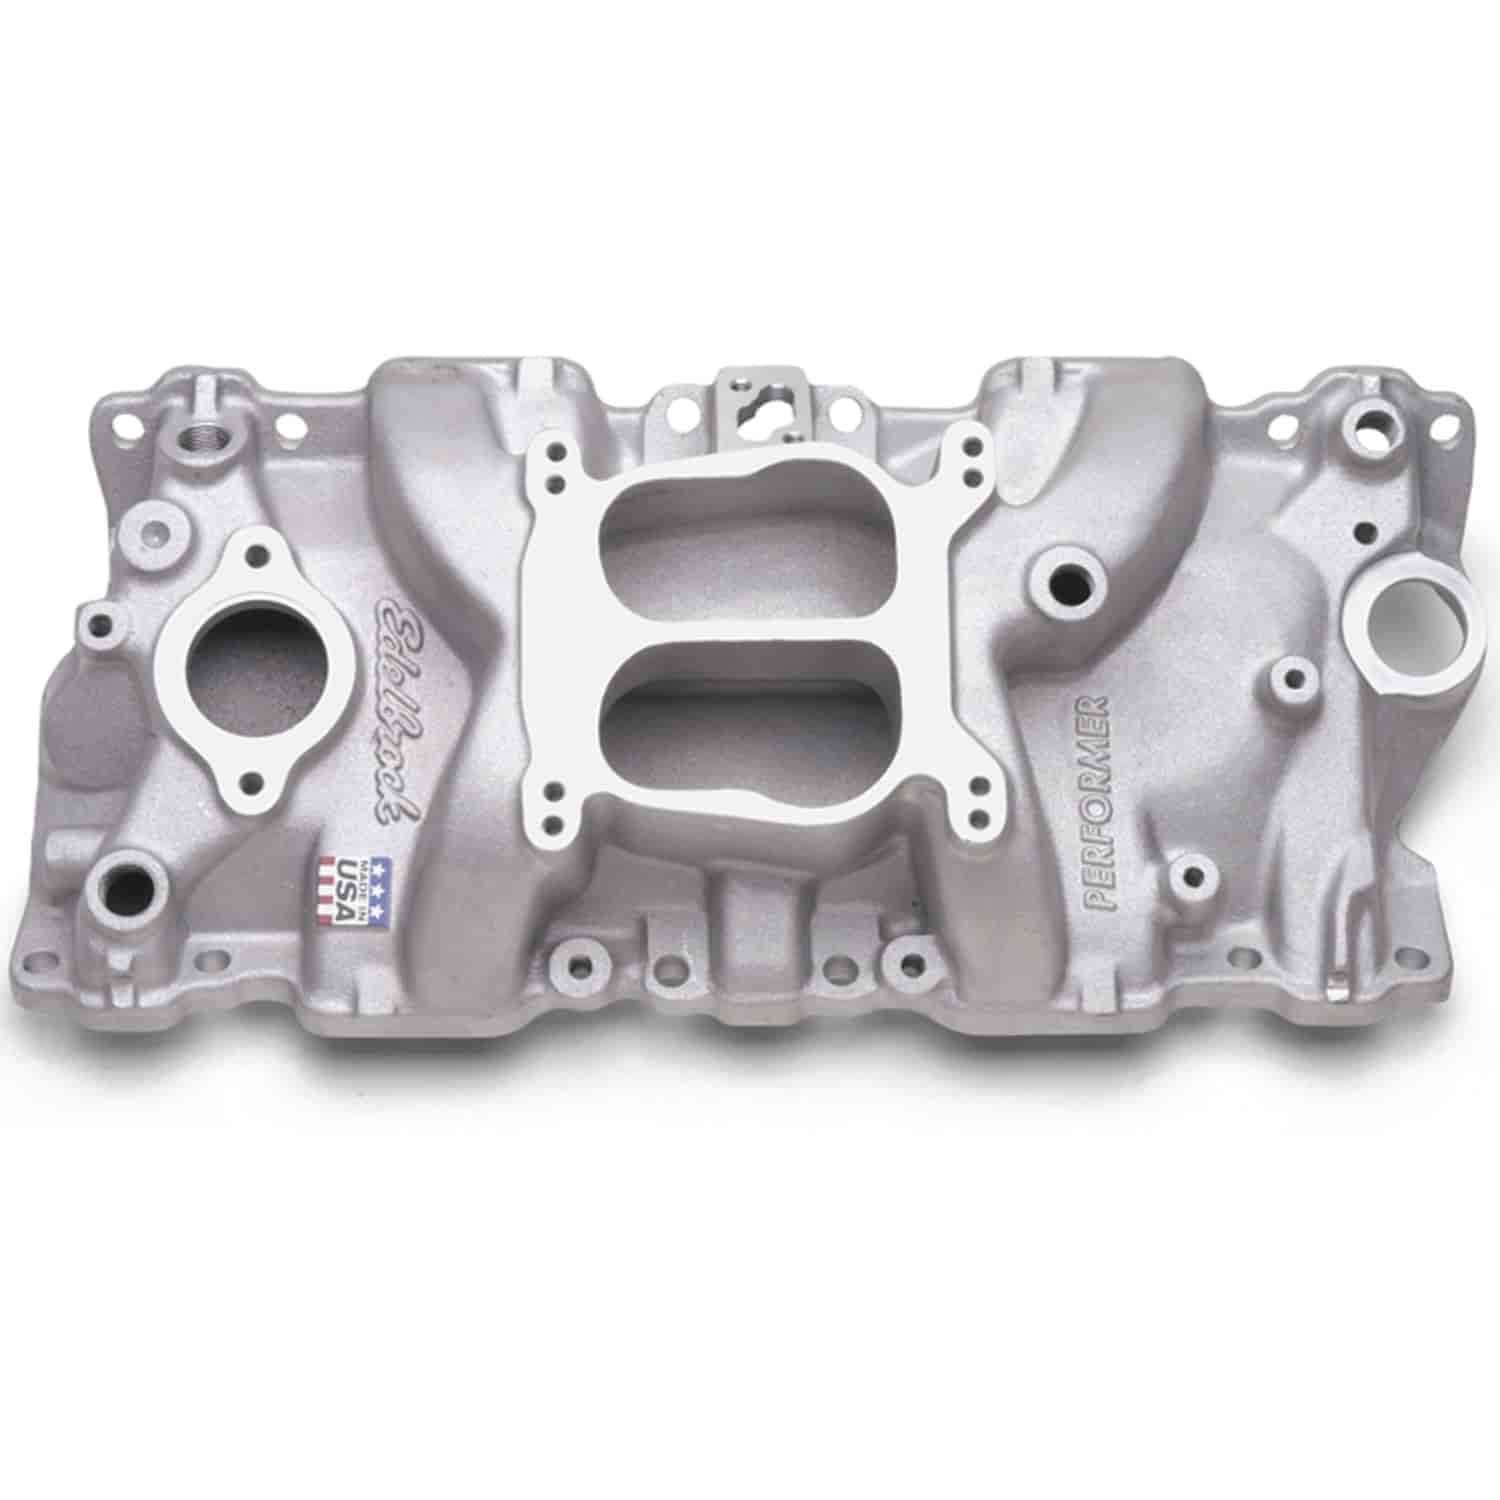 Edelbrock 2104 - Edelbrock Performer Intake Manifolds for Chevy